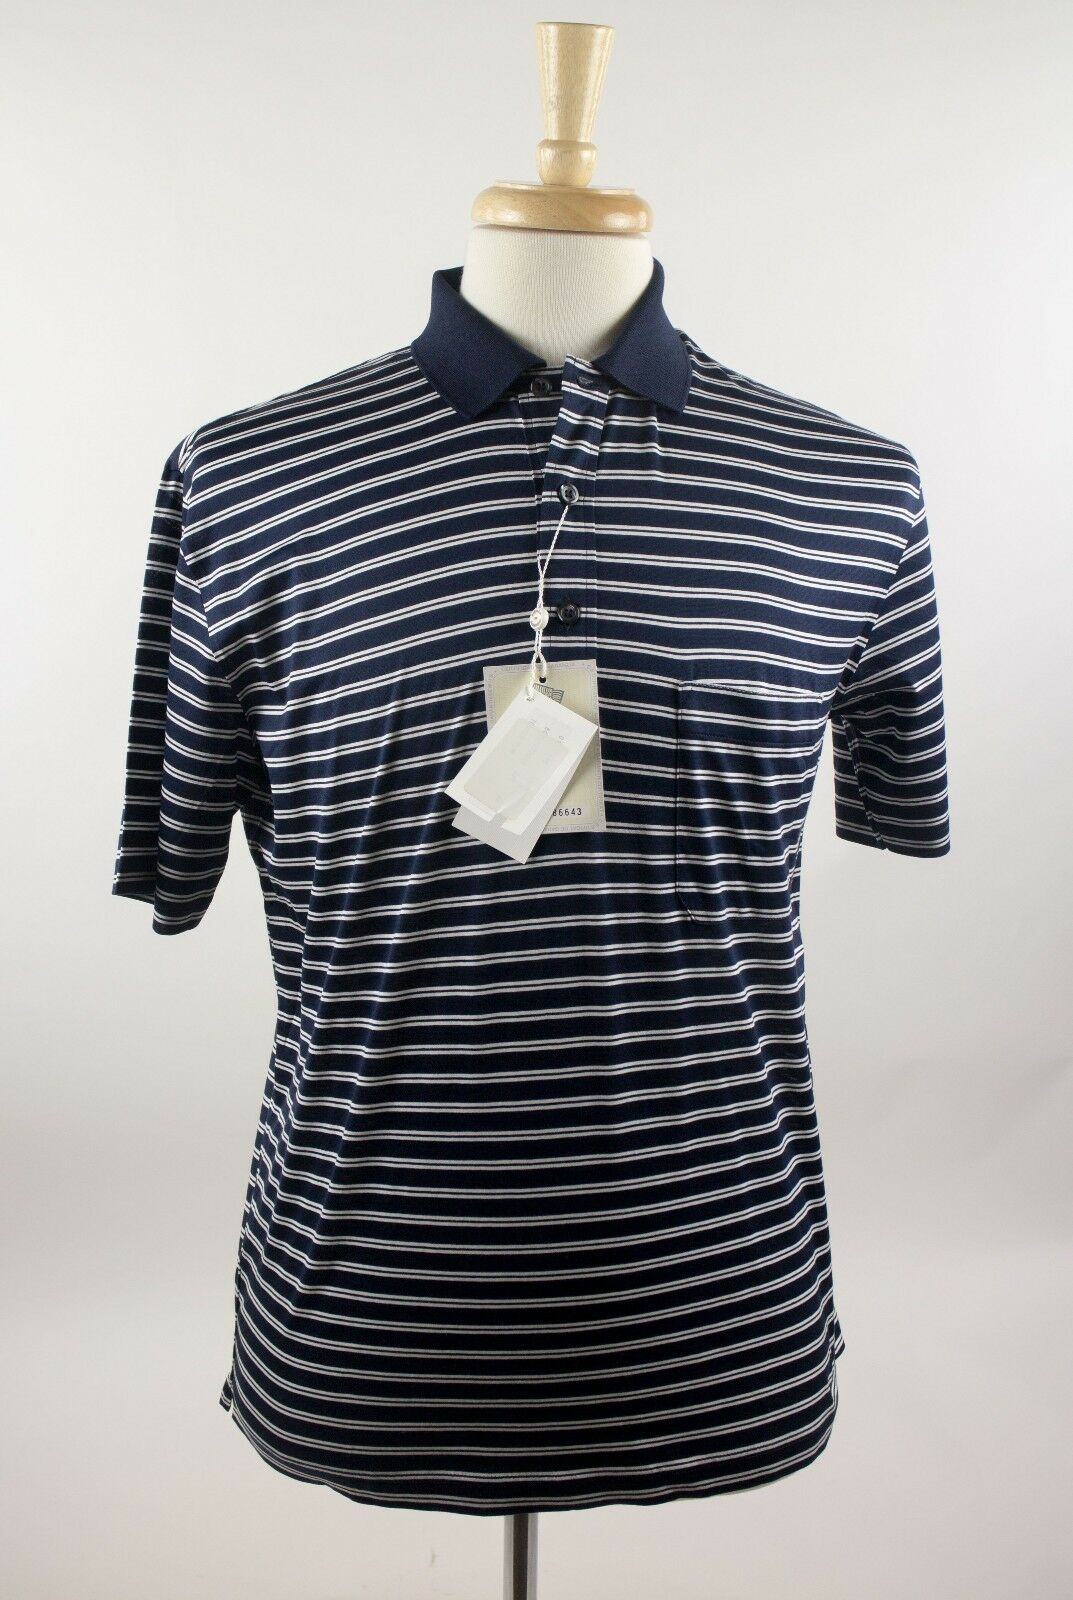 NWT Davide Cenci Midnight bluee & White Striped Casual Polo Shirt 38 48